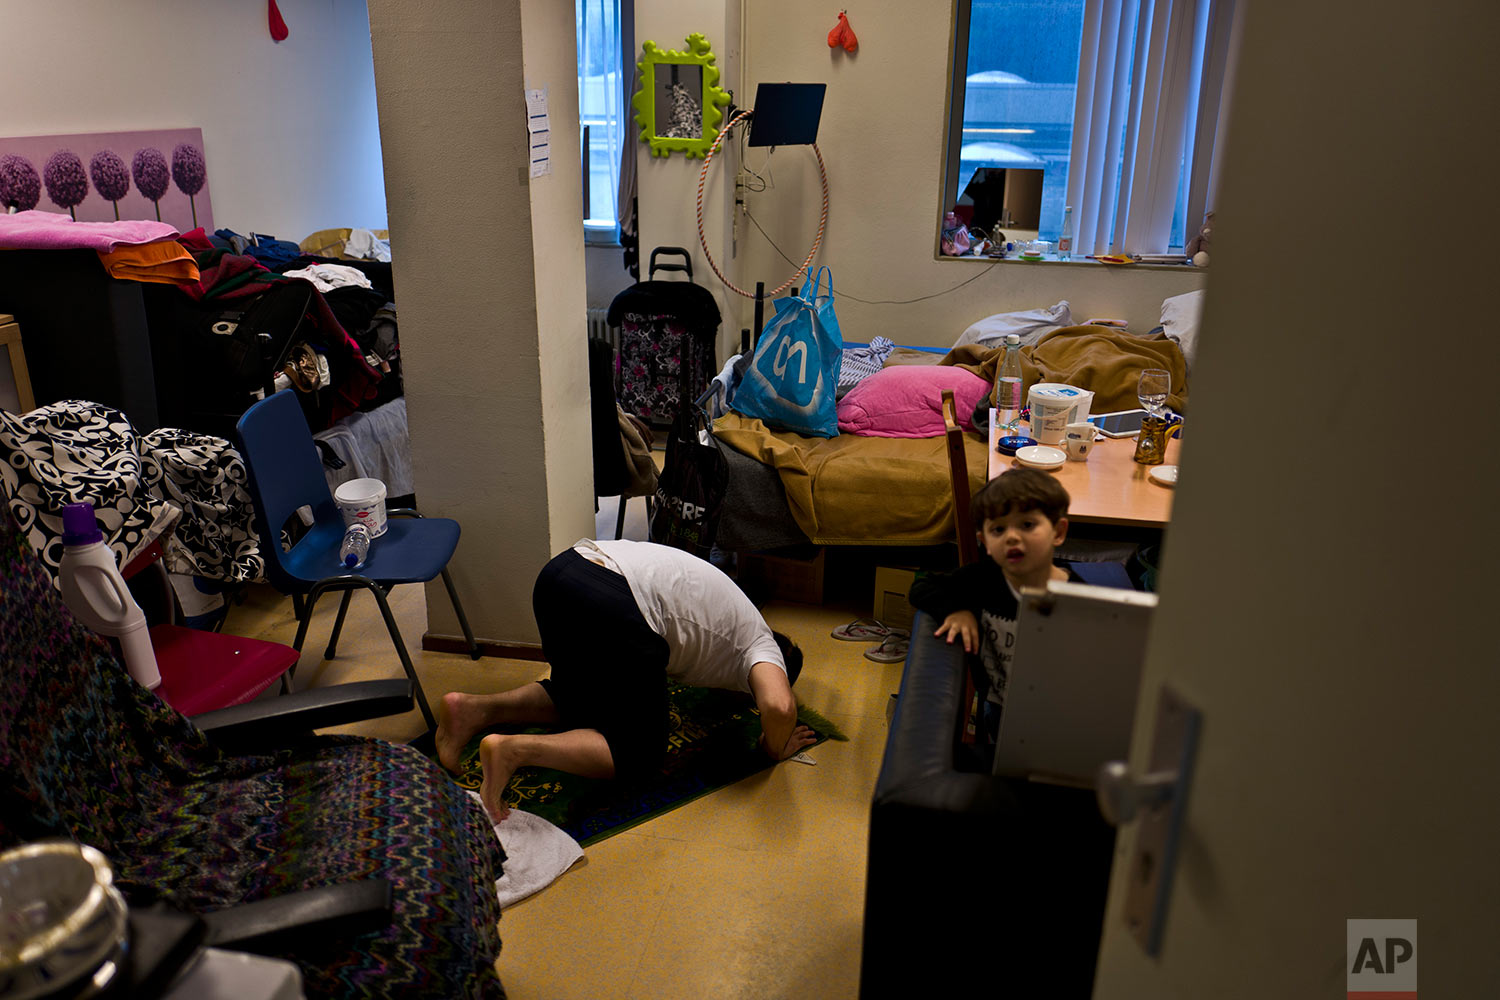 In this Wednesday, June 28, 2017 photo, refugee Hani Nashed, 53, from Aleppo, Syria, offers prayers while his young neighbour Lith Mashhadi, 3, a Syrian refugee from Aleppo, peeks on, at Hani's room in the former prison of Bijlmerbajes, in Amsterdam, Netherlands. (AP Photo/Muhammed Muheisen)